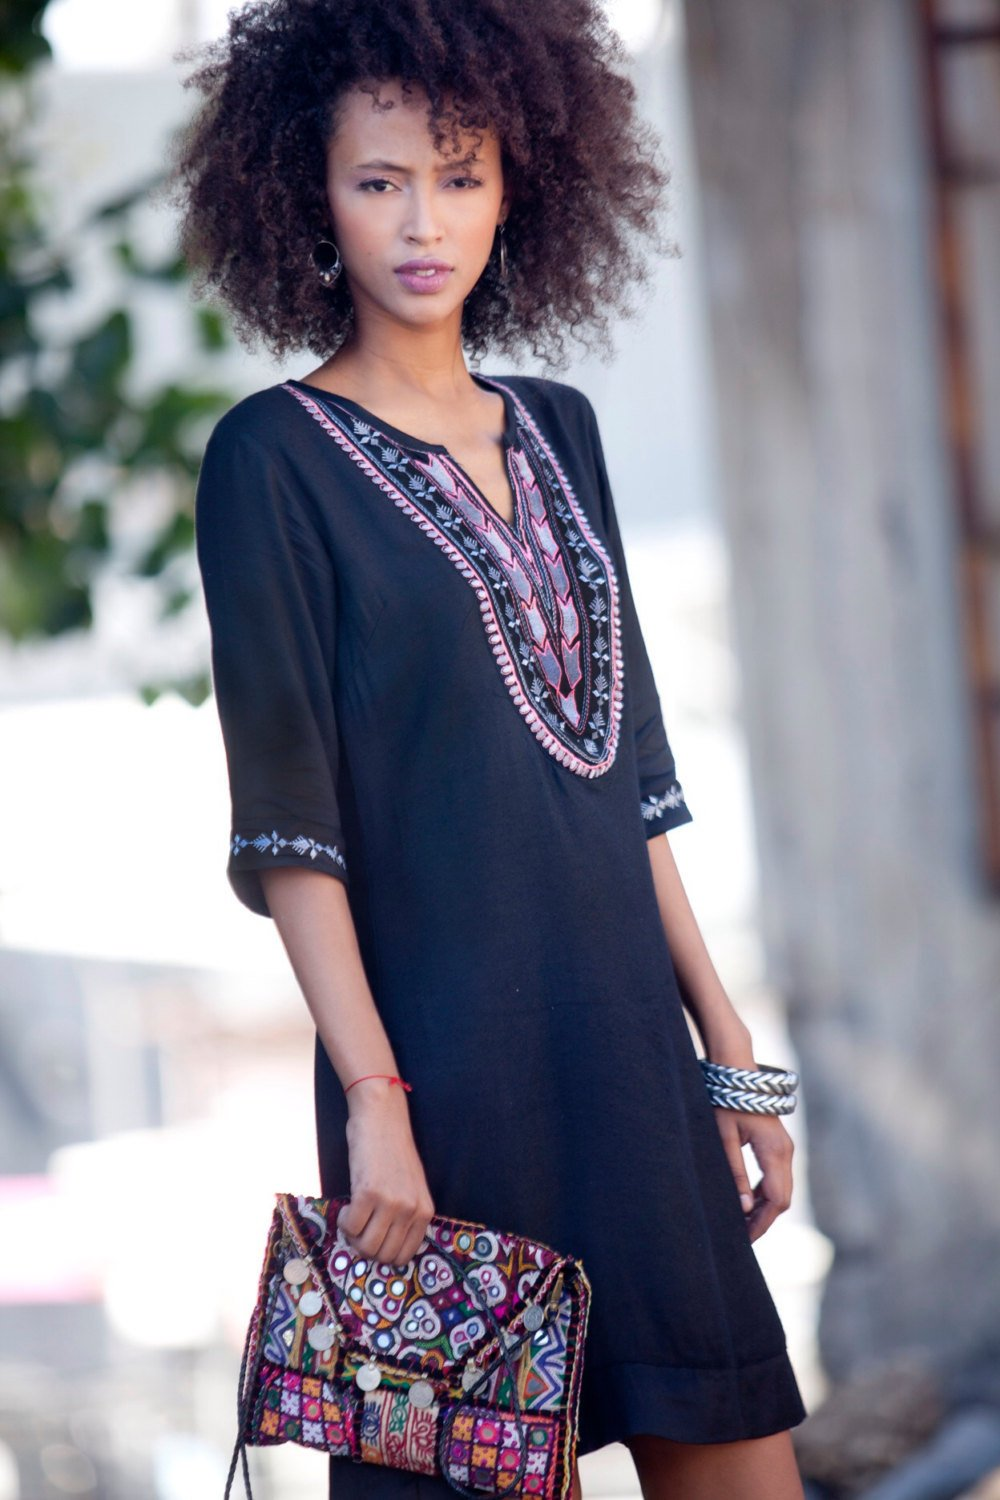 Black Tunic dress, Caftan Dress with sleeves, Boho Ethnic Embroidery Dress, Bohemian Moroccan inspired Dress